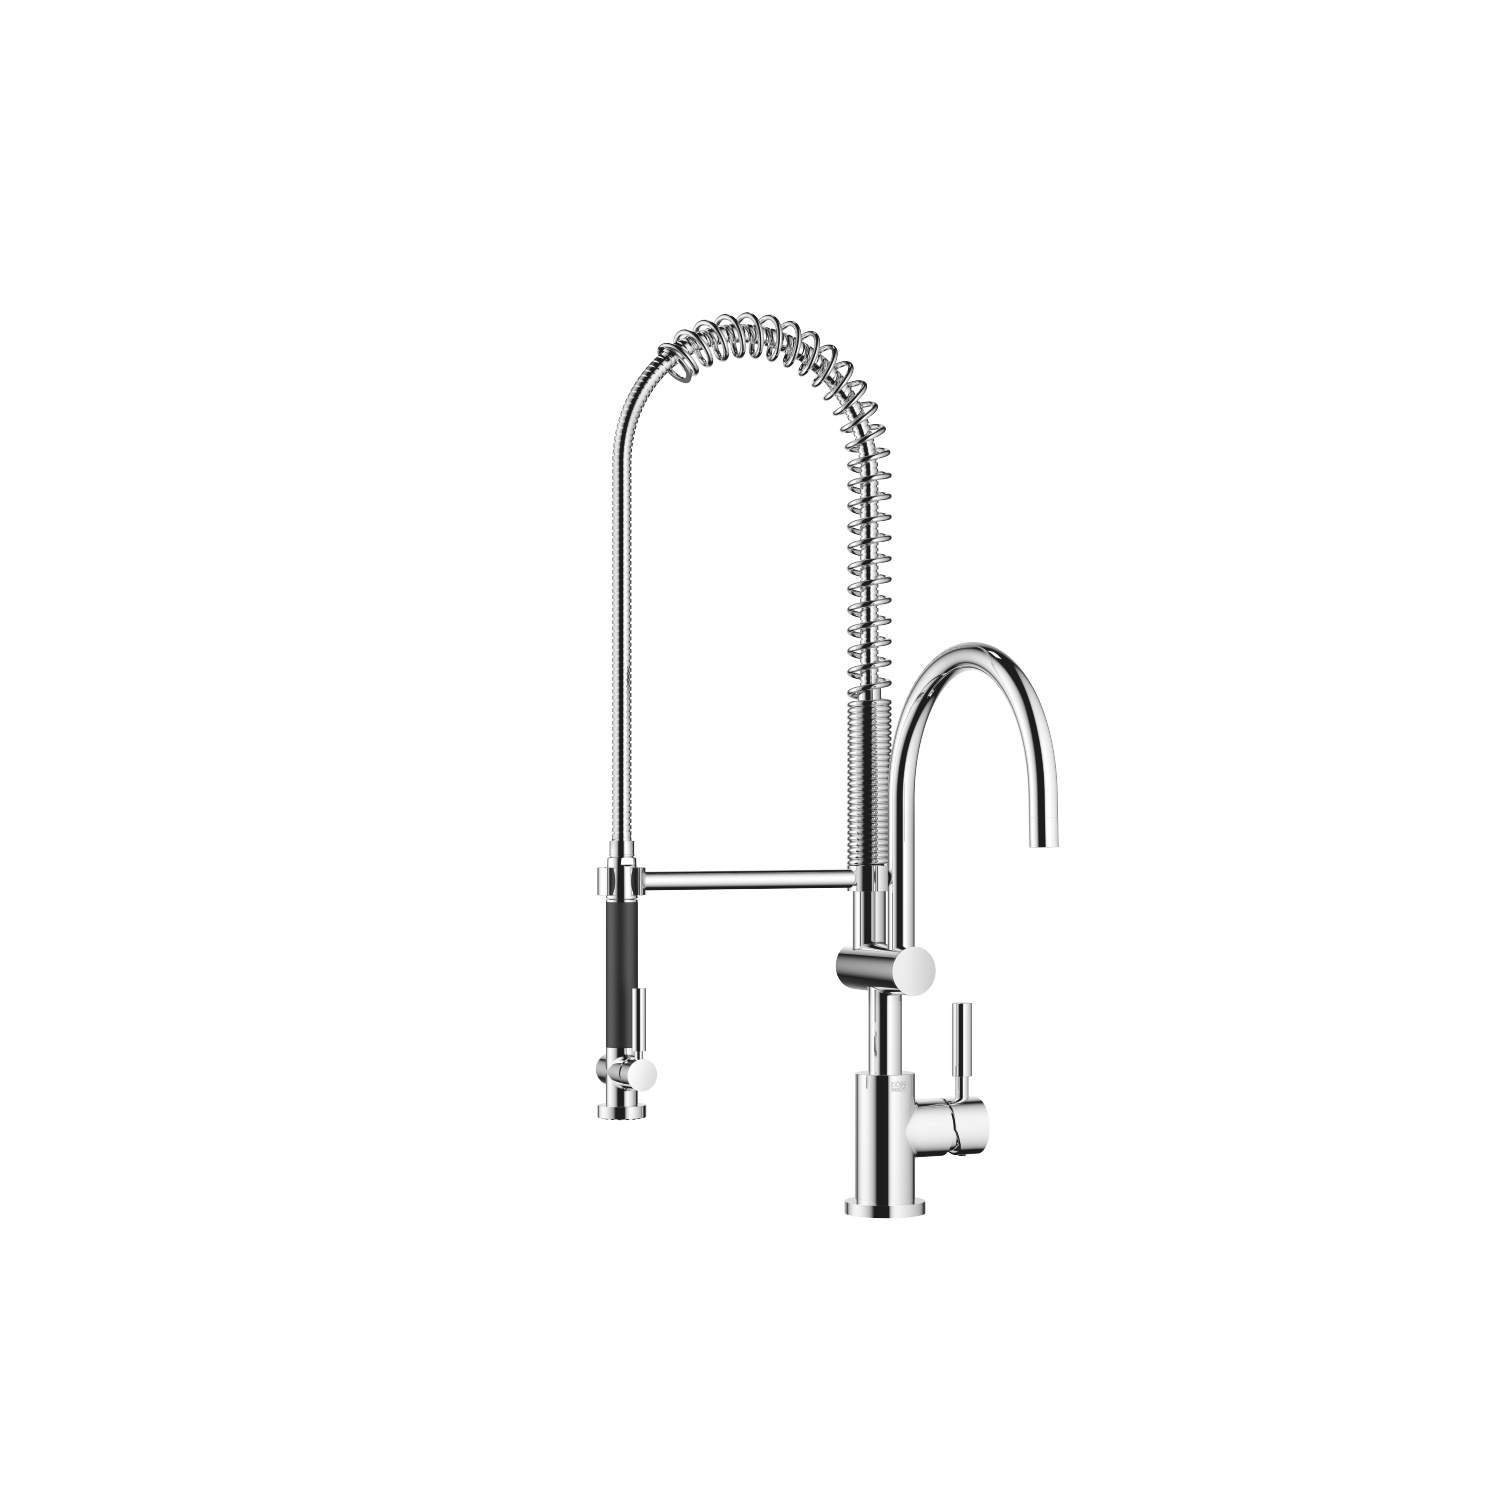 Profi single-lever mixer - polished chrome - 33 880 888-00